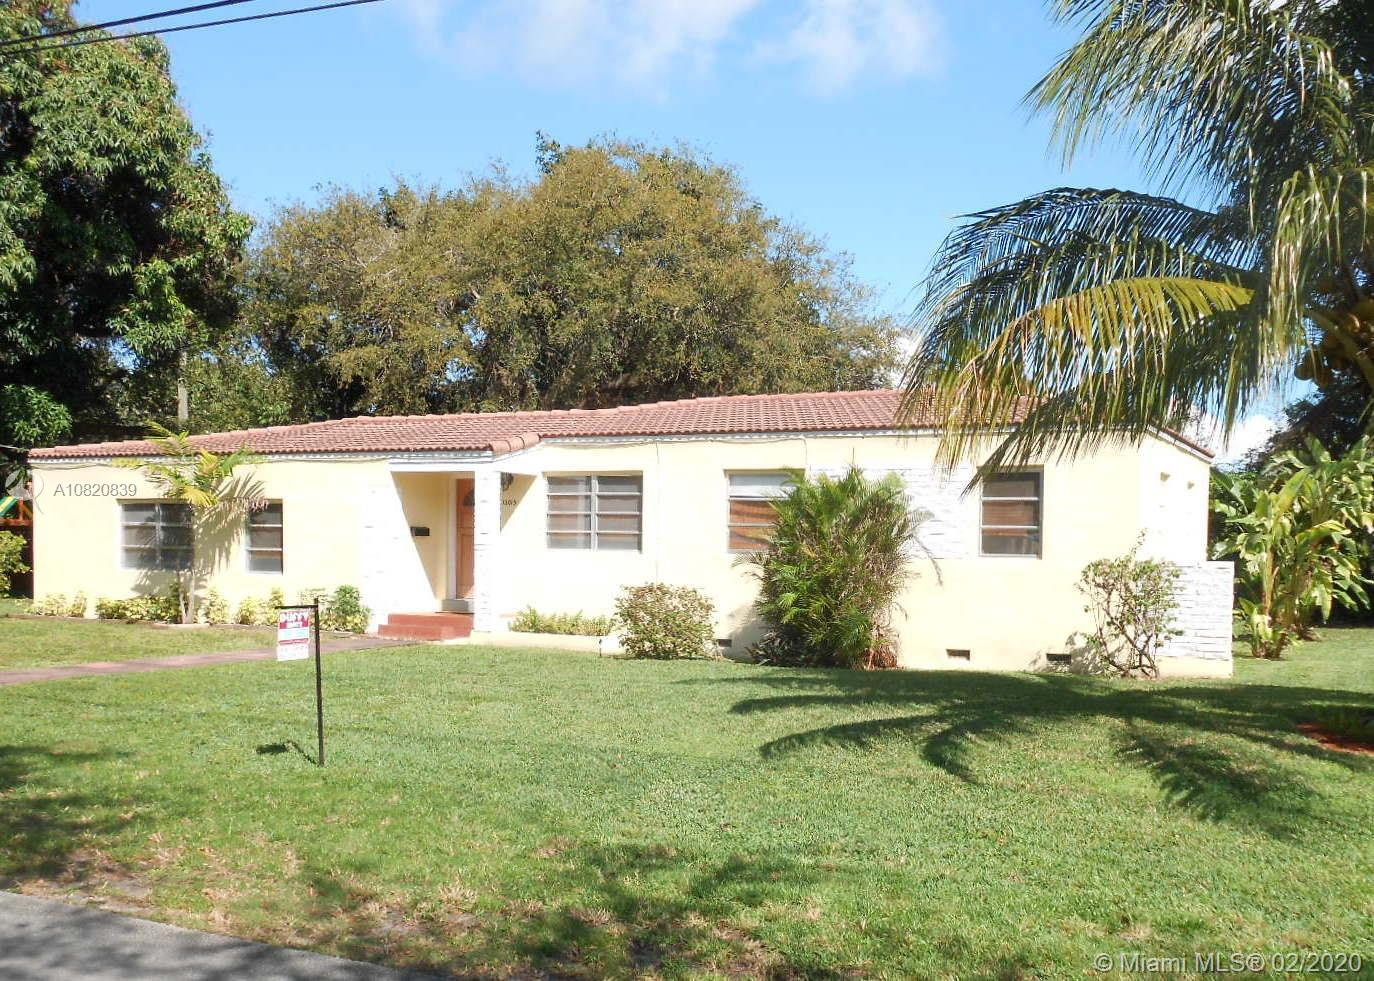 One of Miami Shores 3 Bedroom Homes for Sale at 12015 NE 10th Ave